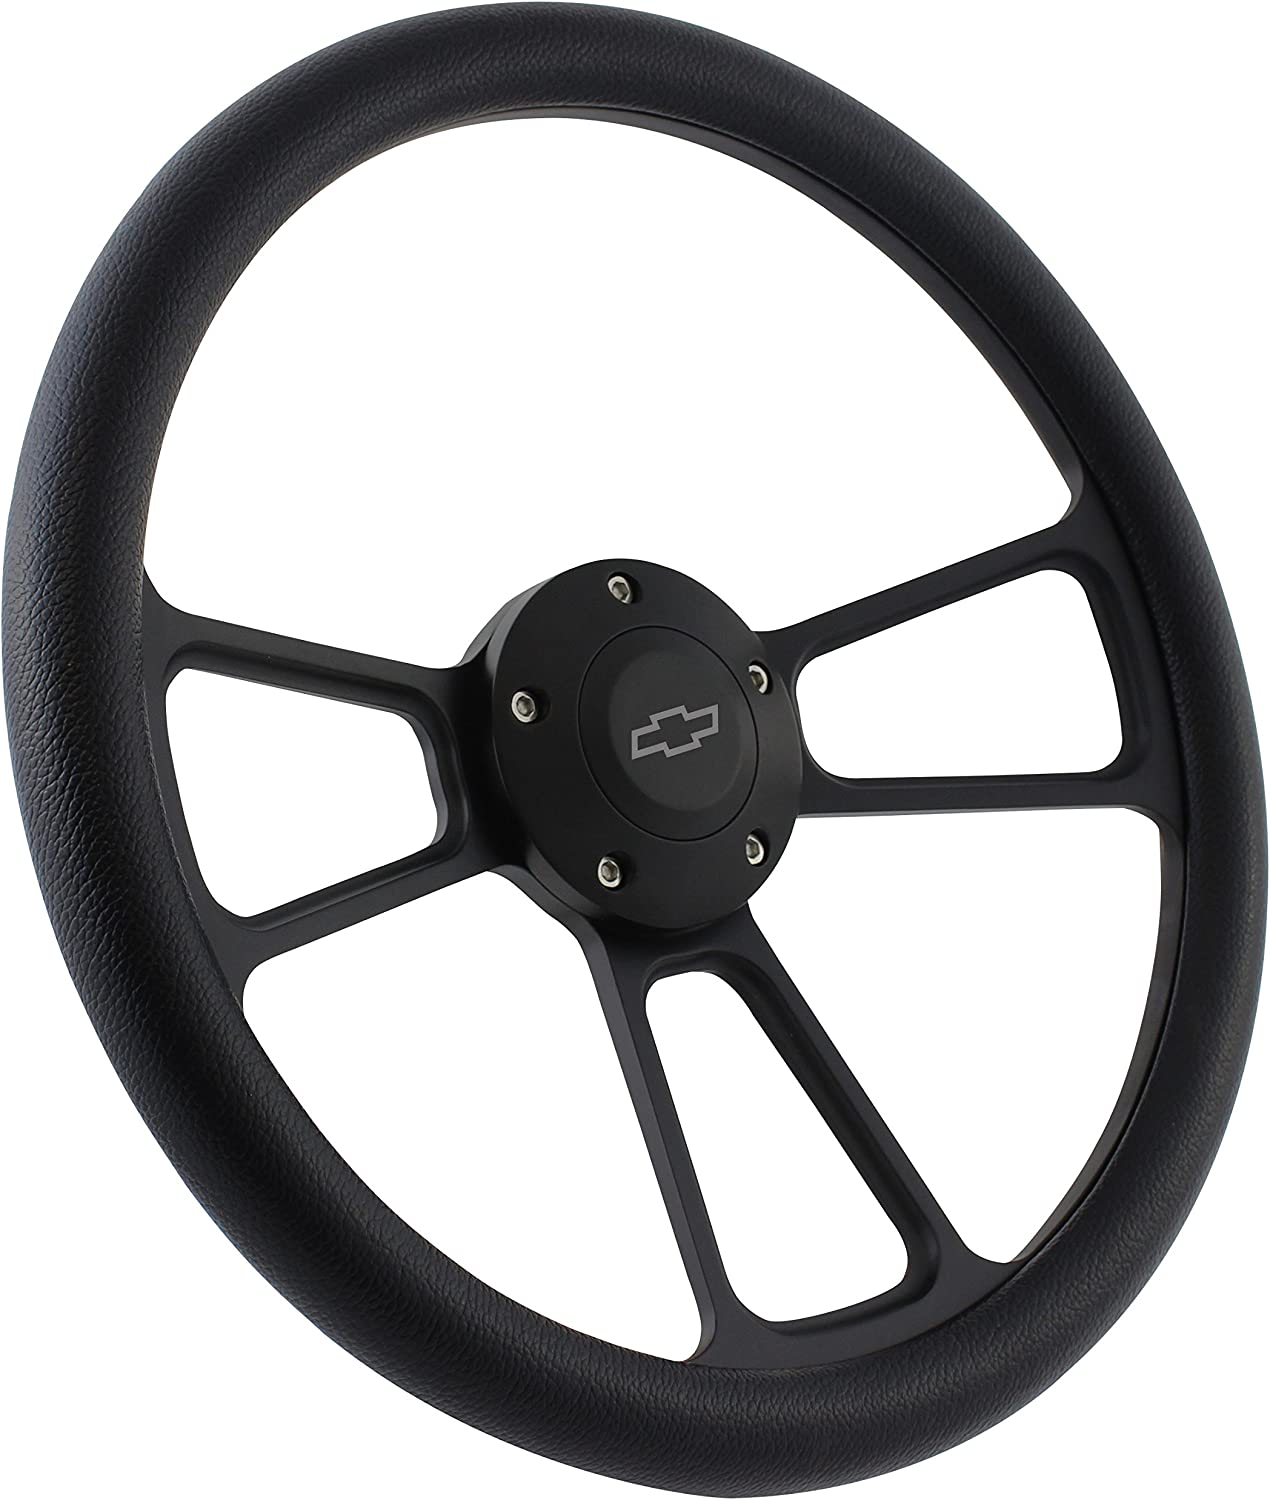 Black Shipping Max 62% OFF included Steering Wheel 14 Inch Wrap Vinyl Aluminum with Half